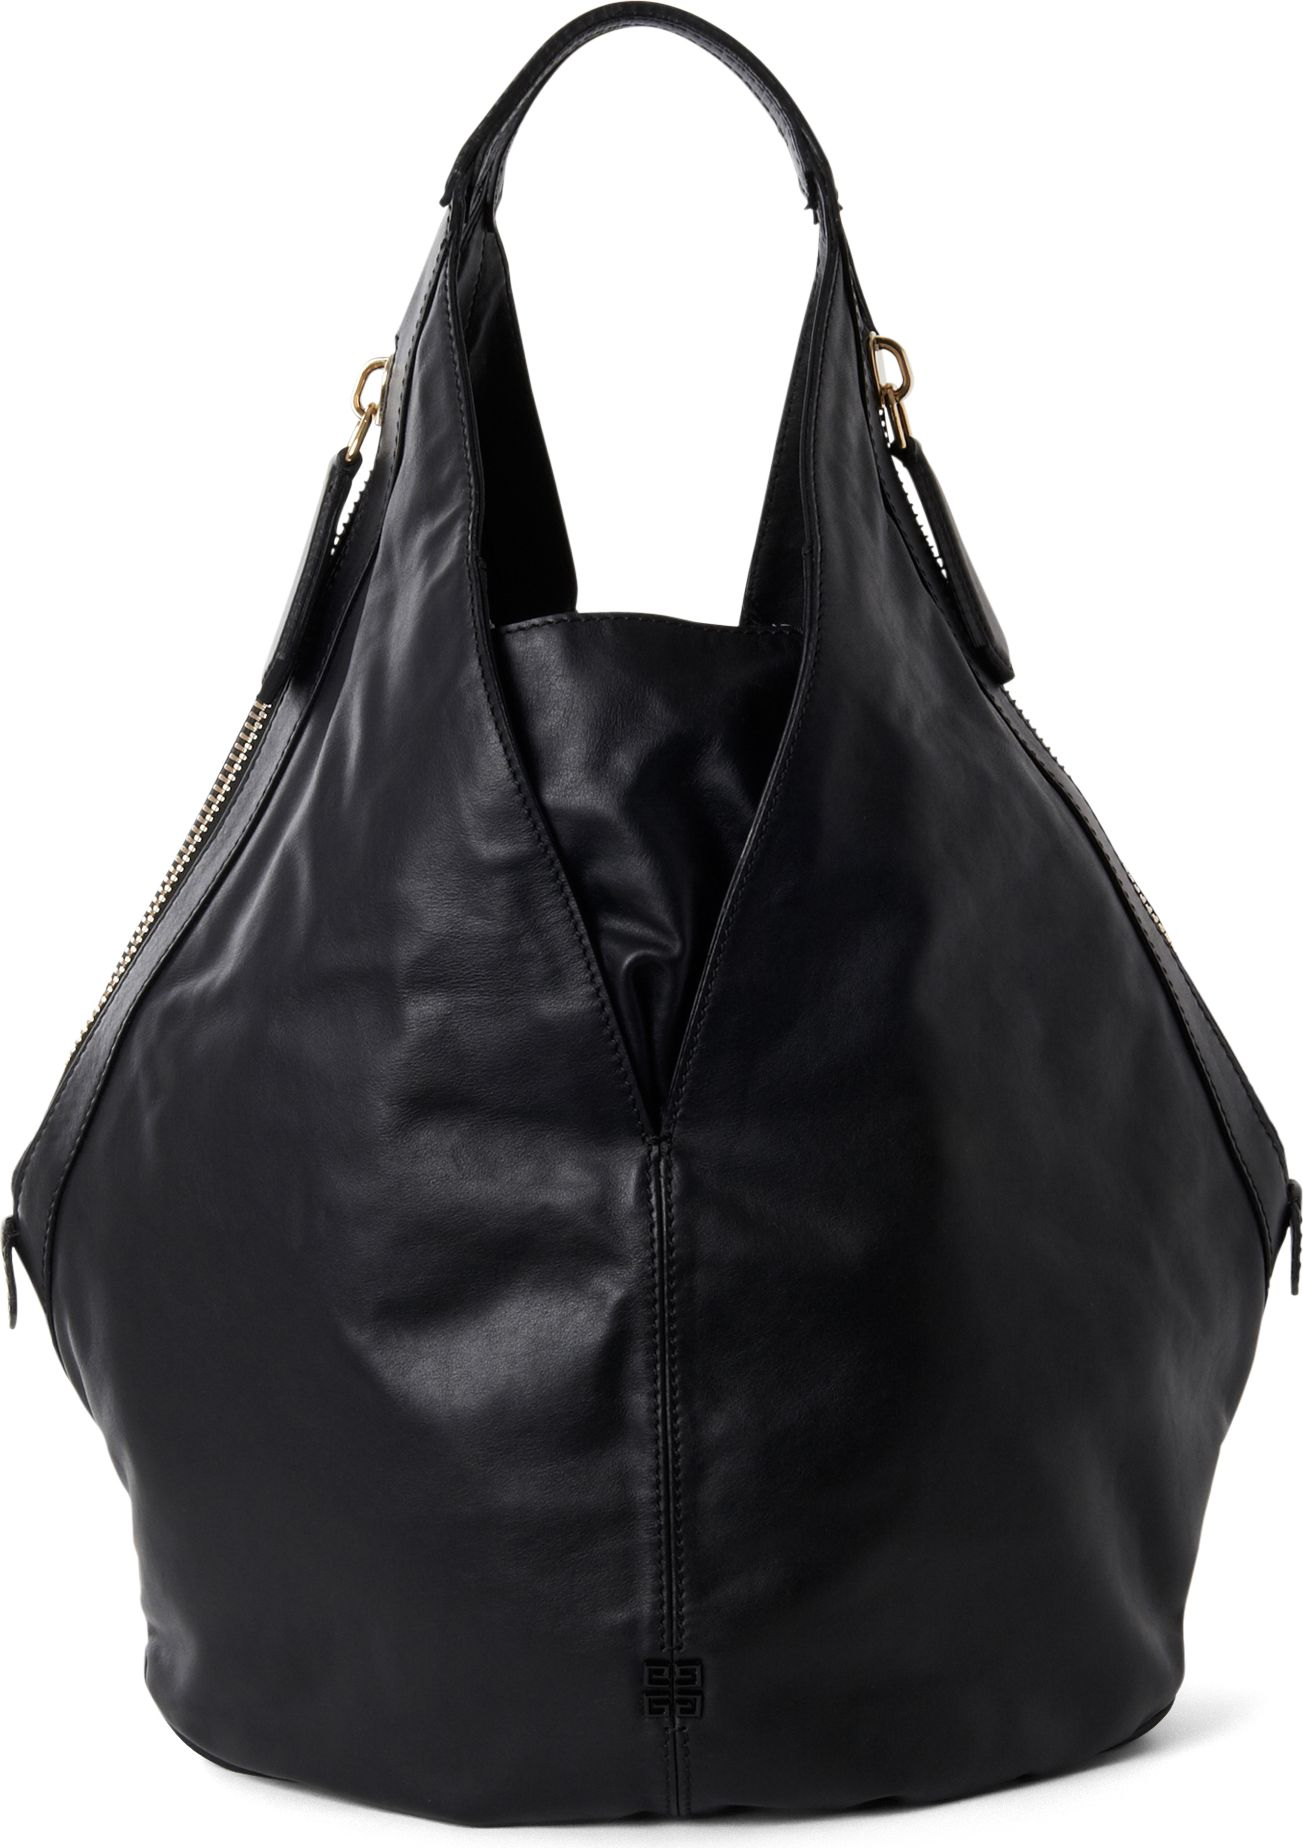 Givenchy hobo bag in black lyst for Givenchy outlet online